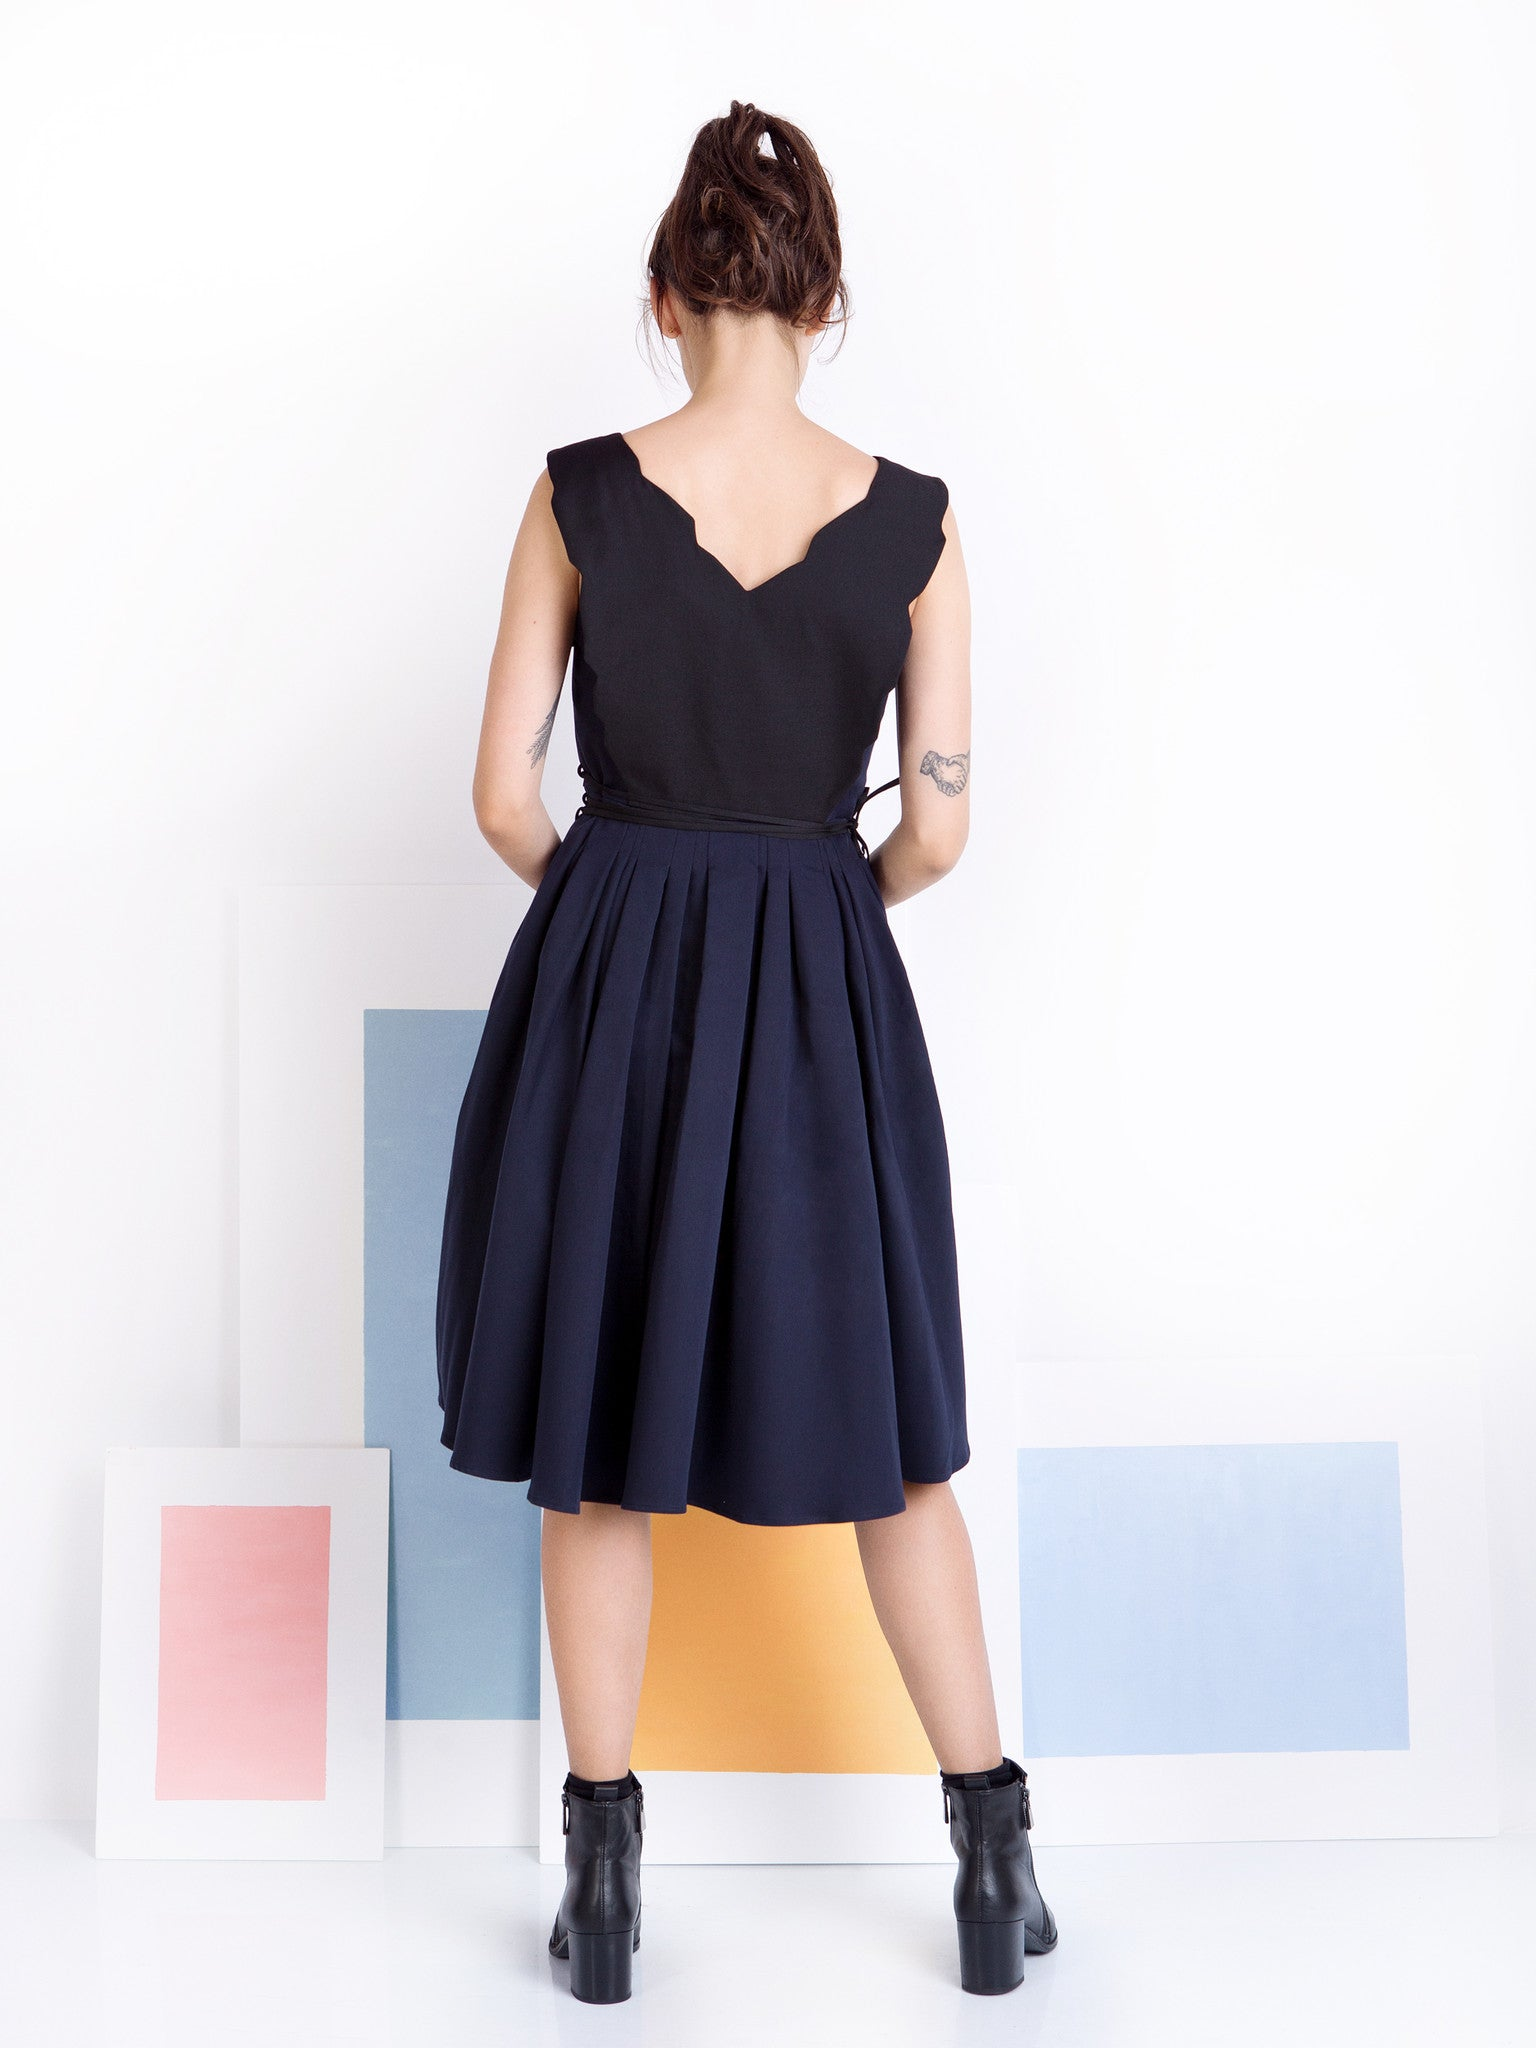 Ambali Black and Navy Dress Black